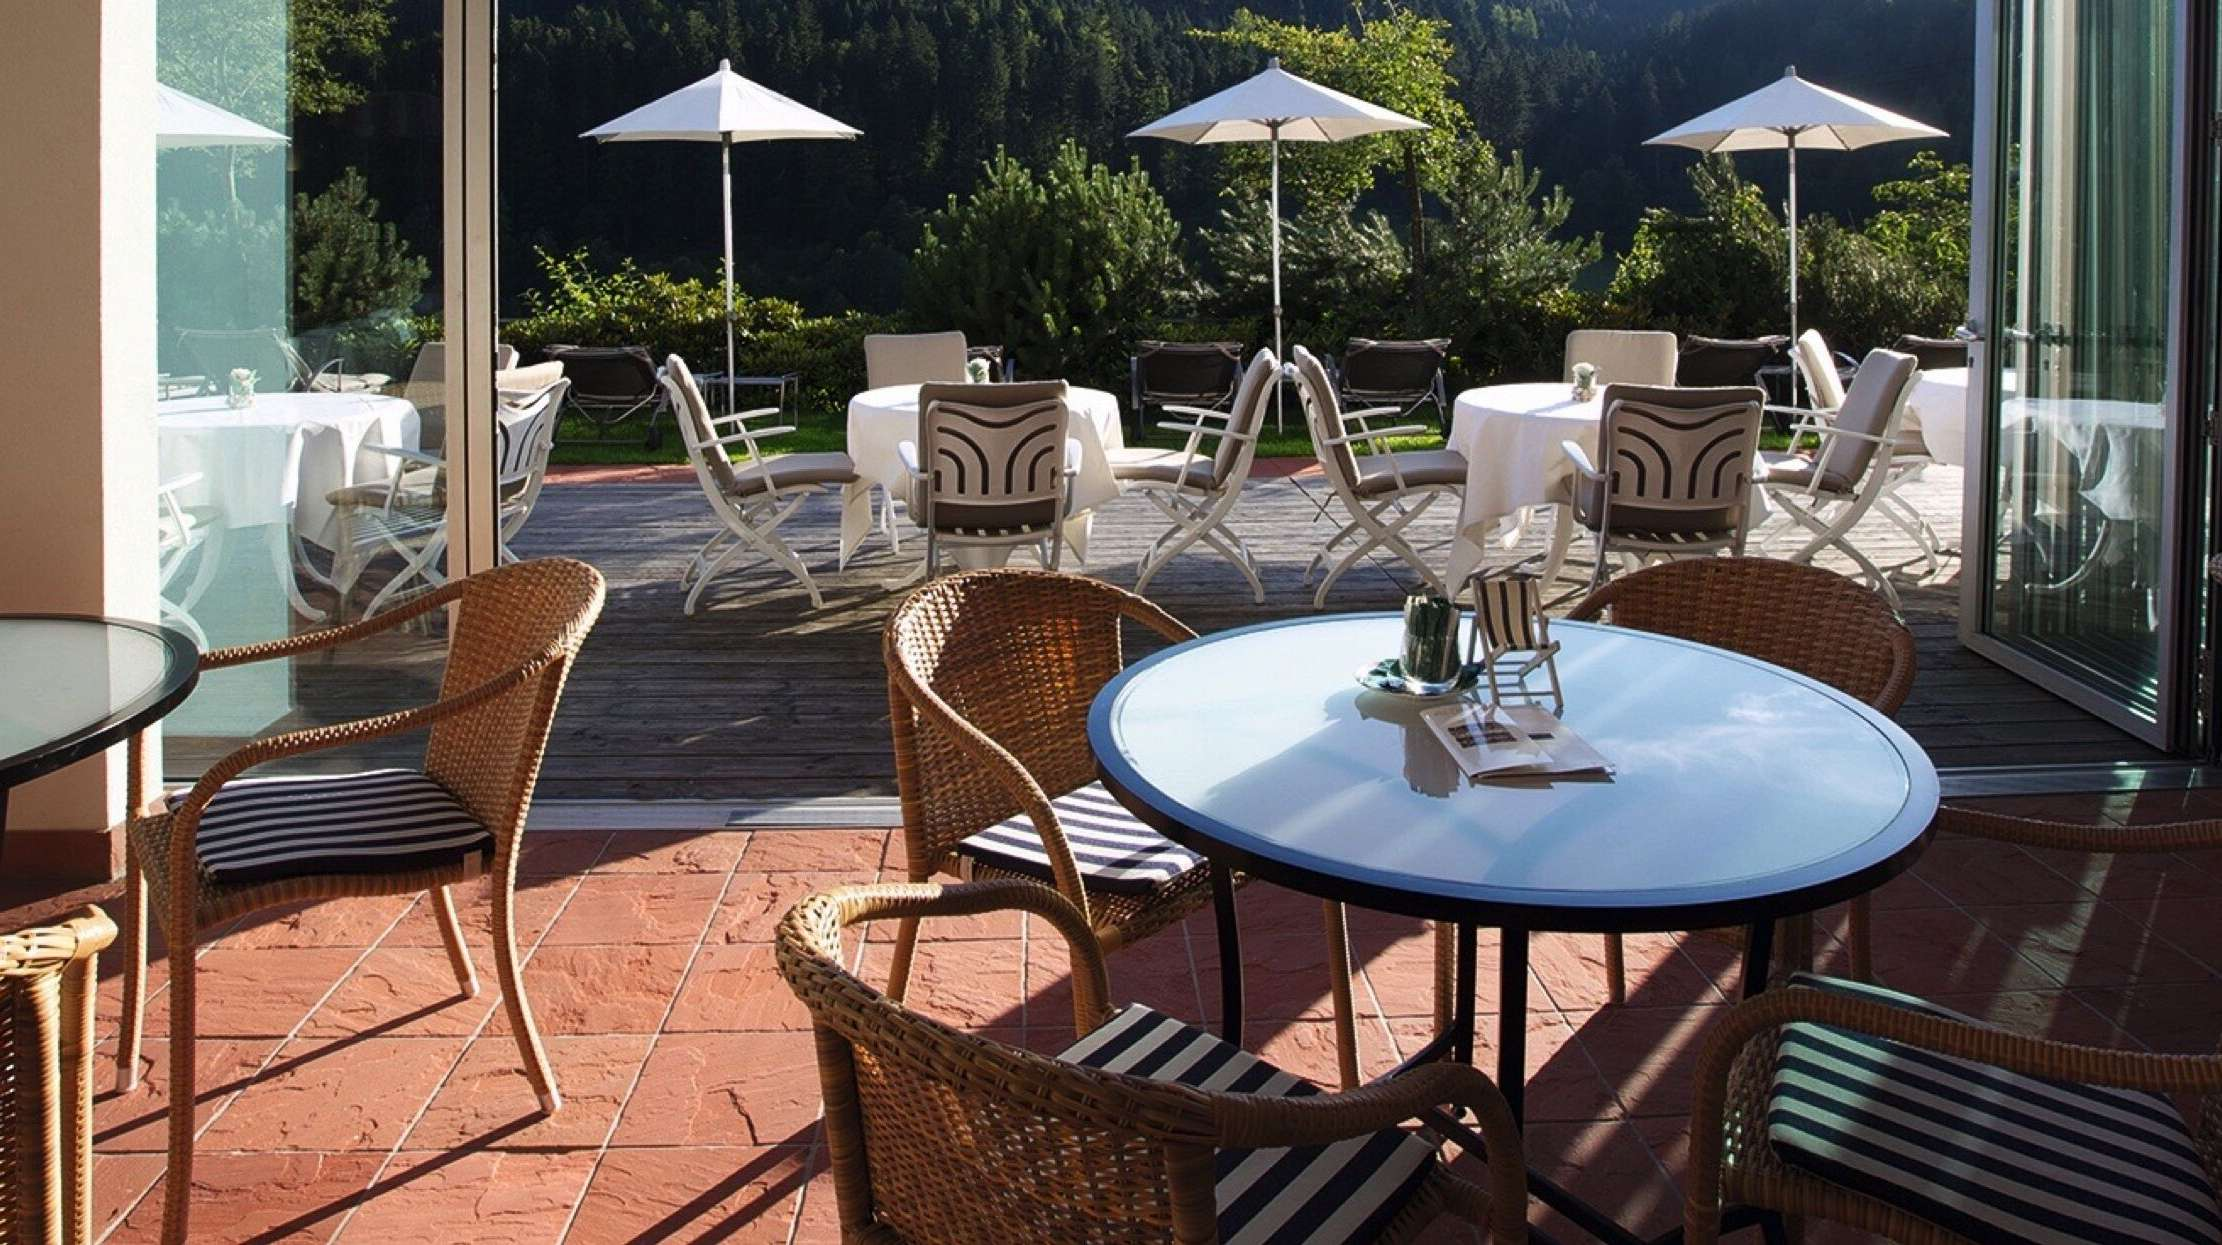 Traube Tonbach Wellness Poolbistro